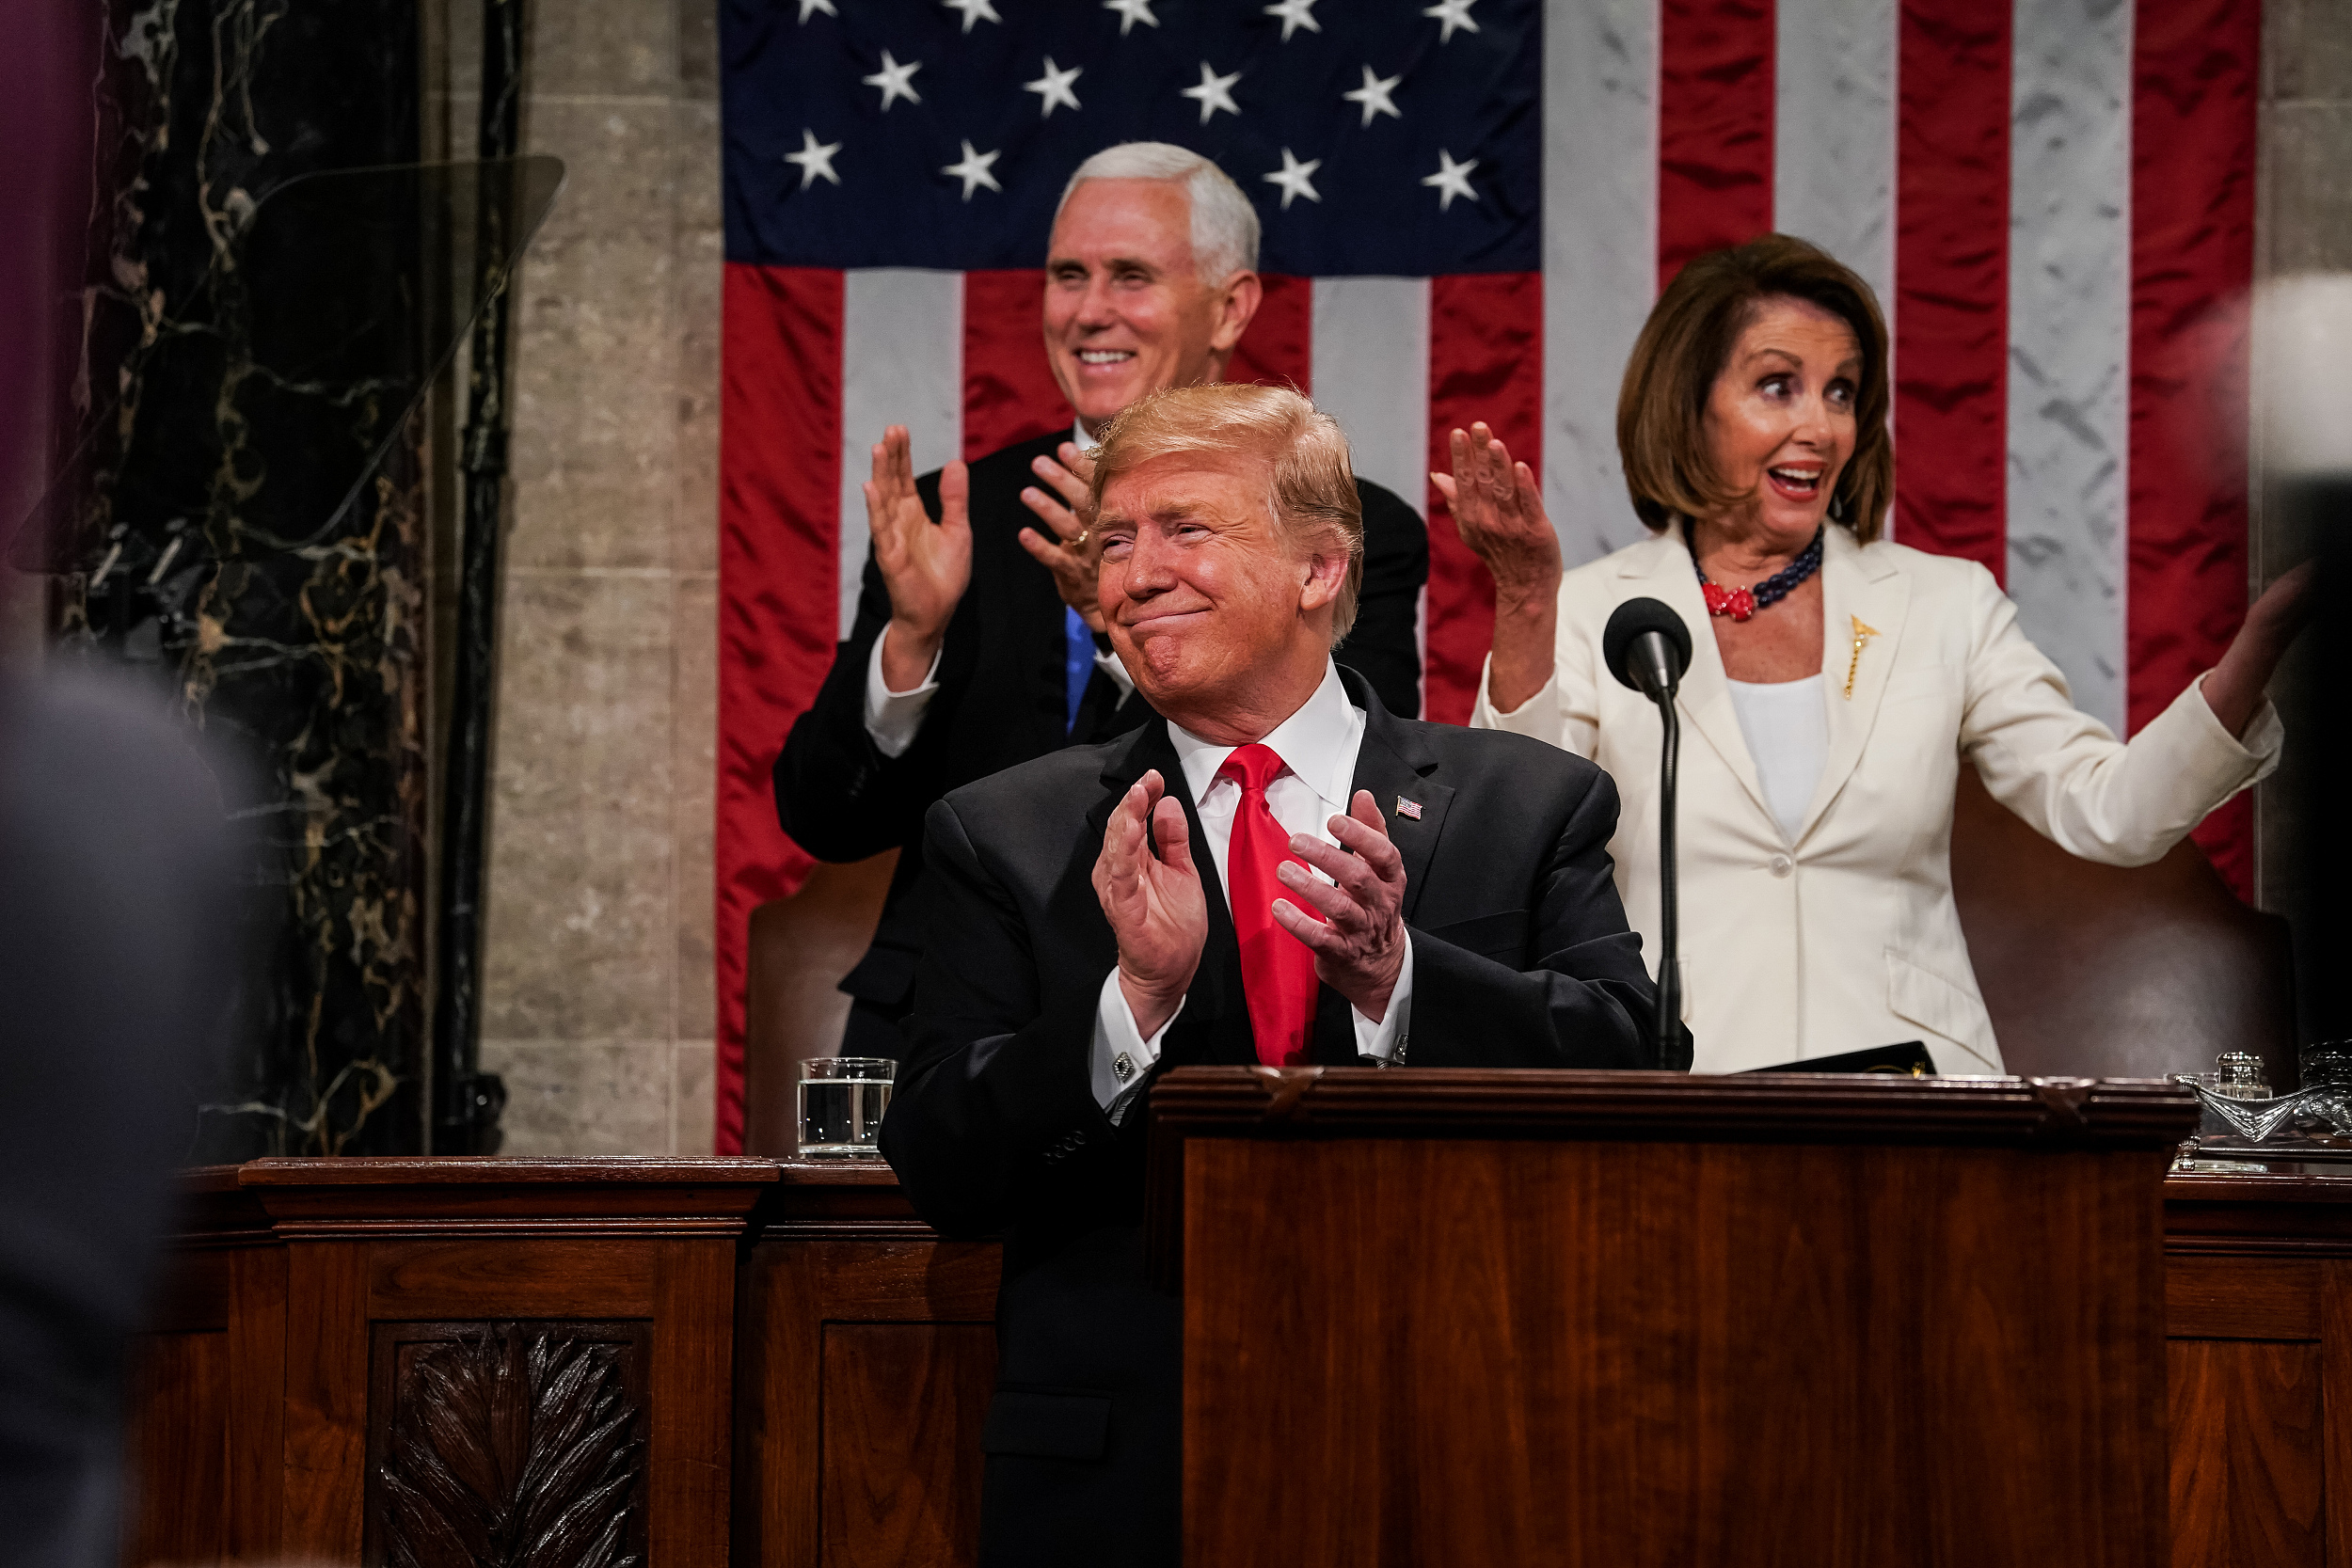 President Donald Trump, Speaker Nancy Pelosi and Vice President Mike Pence applaud during the State of the Union address in the chamber of the U.S. House of Representatives at the U.S. Capitol Building on Feb. 5 in Washington, DC.